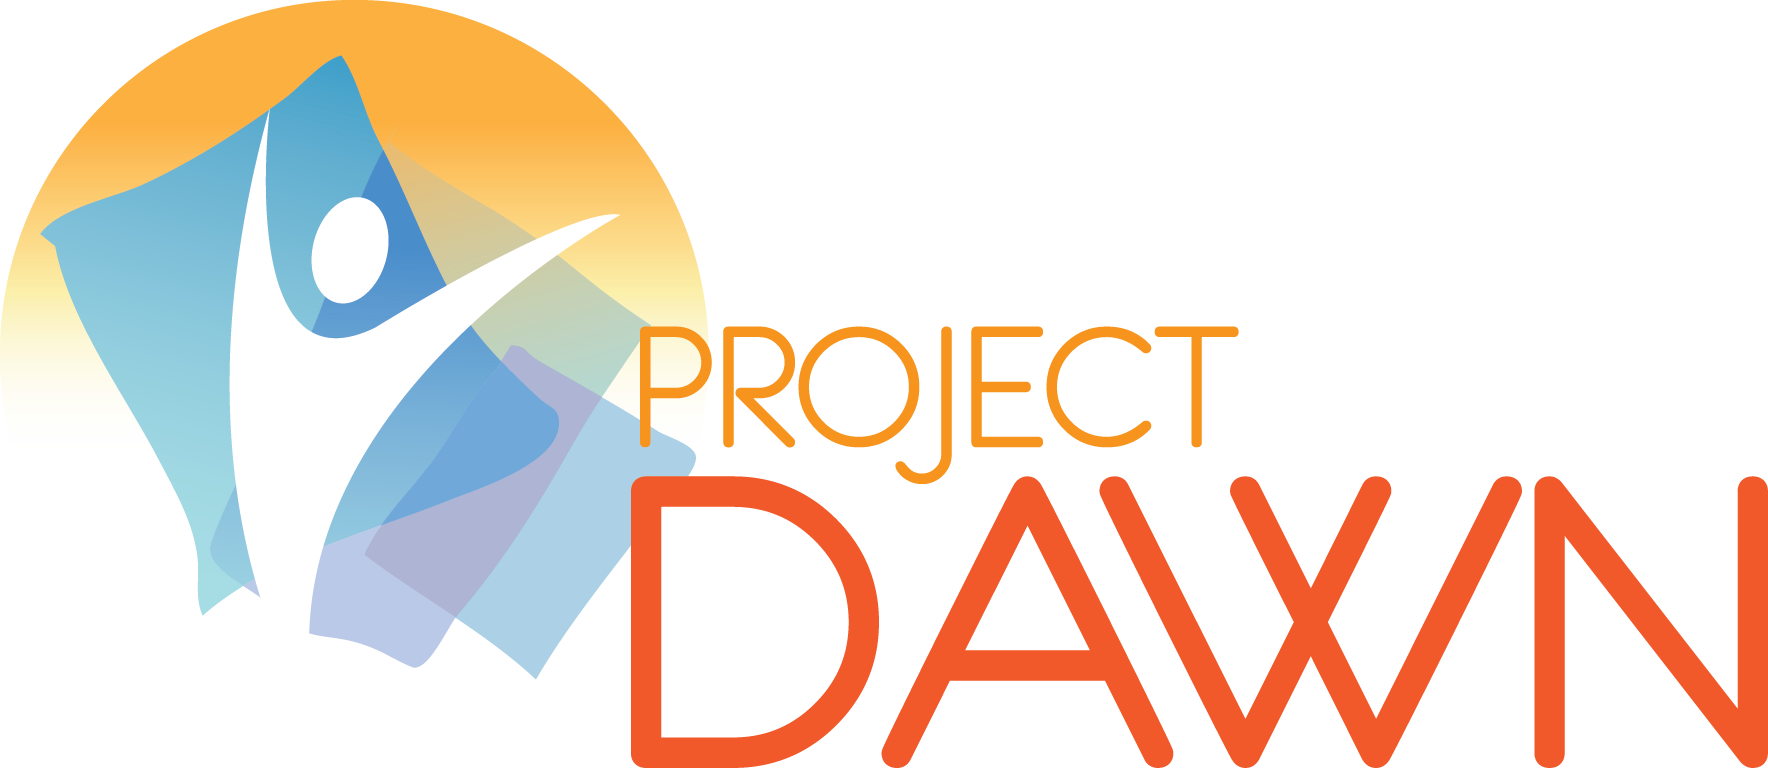 Project DAWN  by the  Ohio Department of Health  aims to prevent death from opioid overdose.